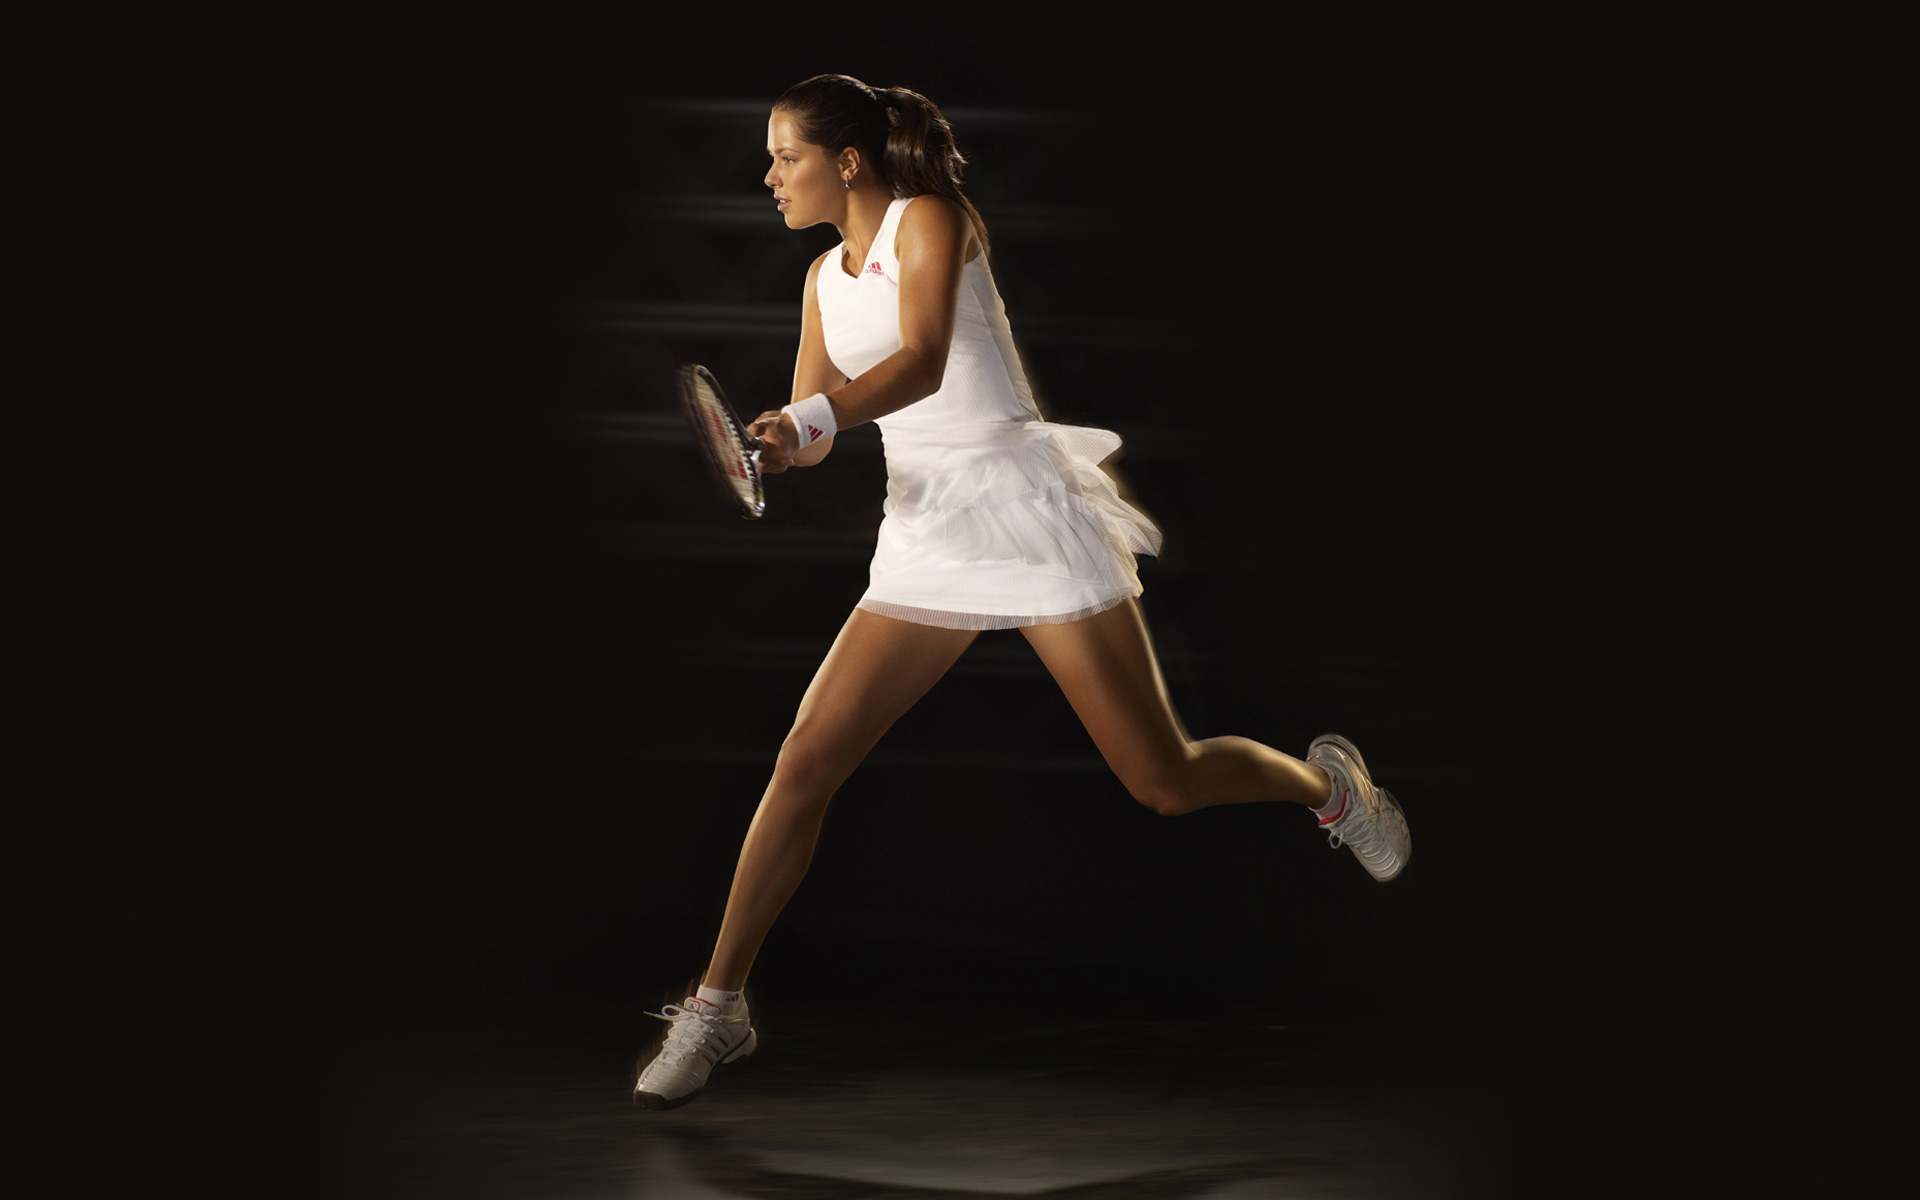 Ana Ivanovic 12 wallpaper